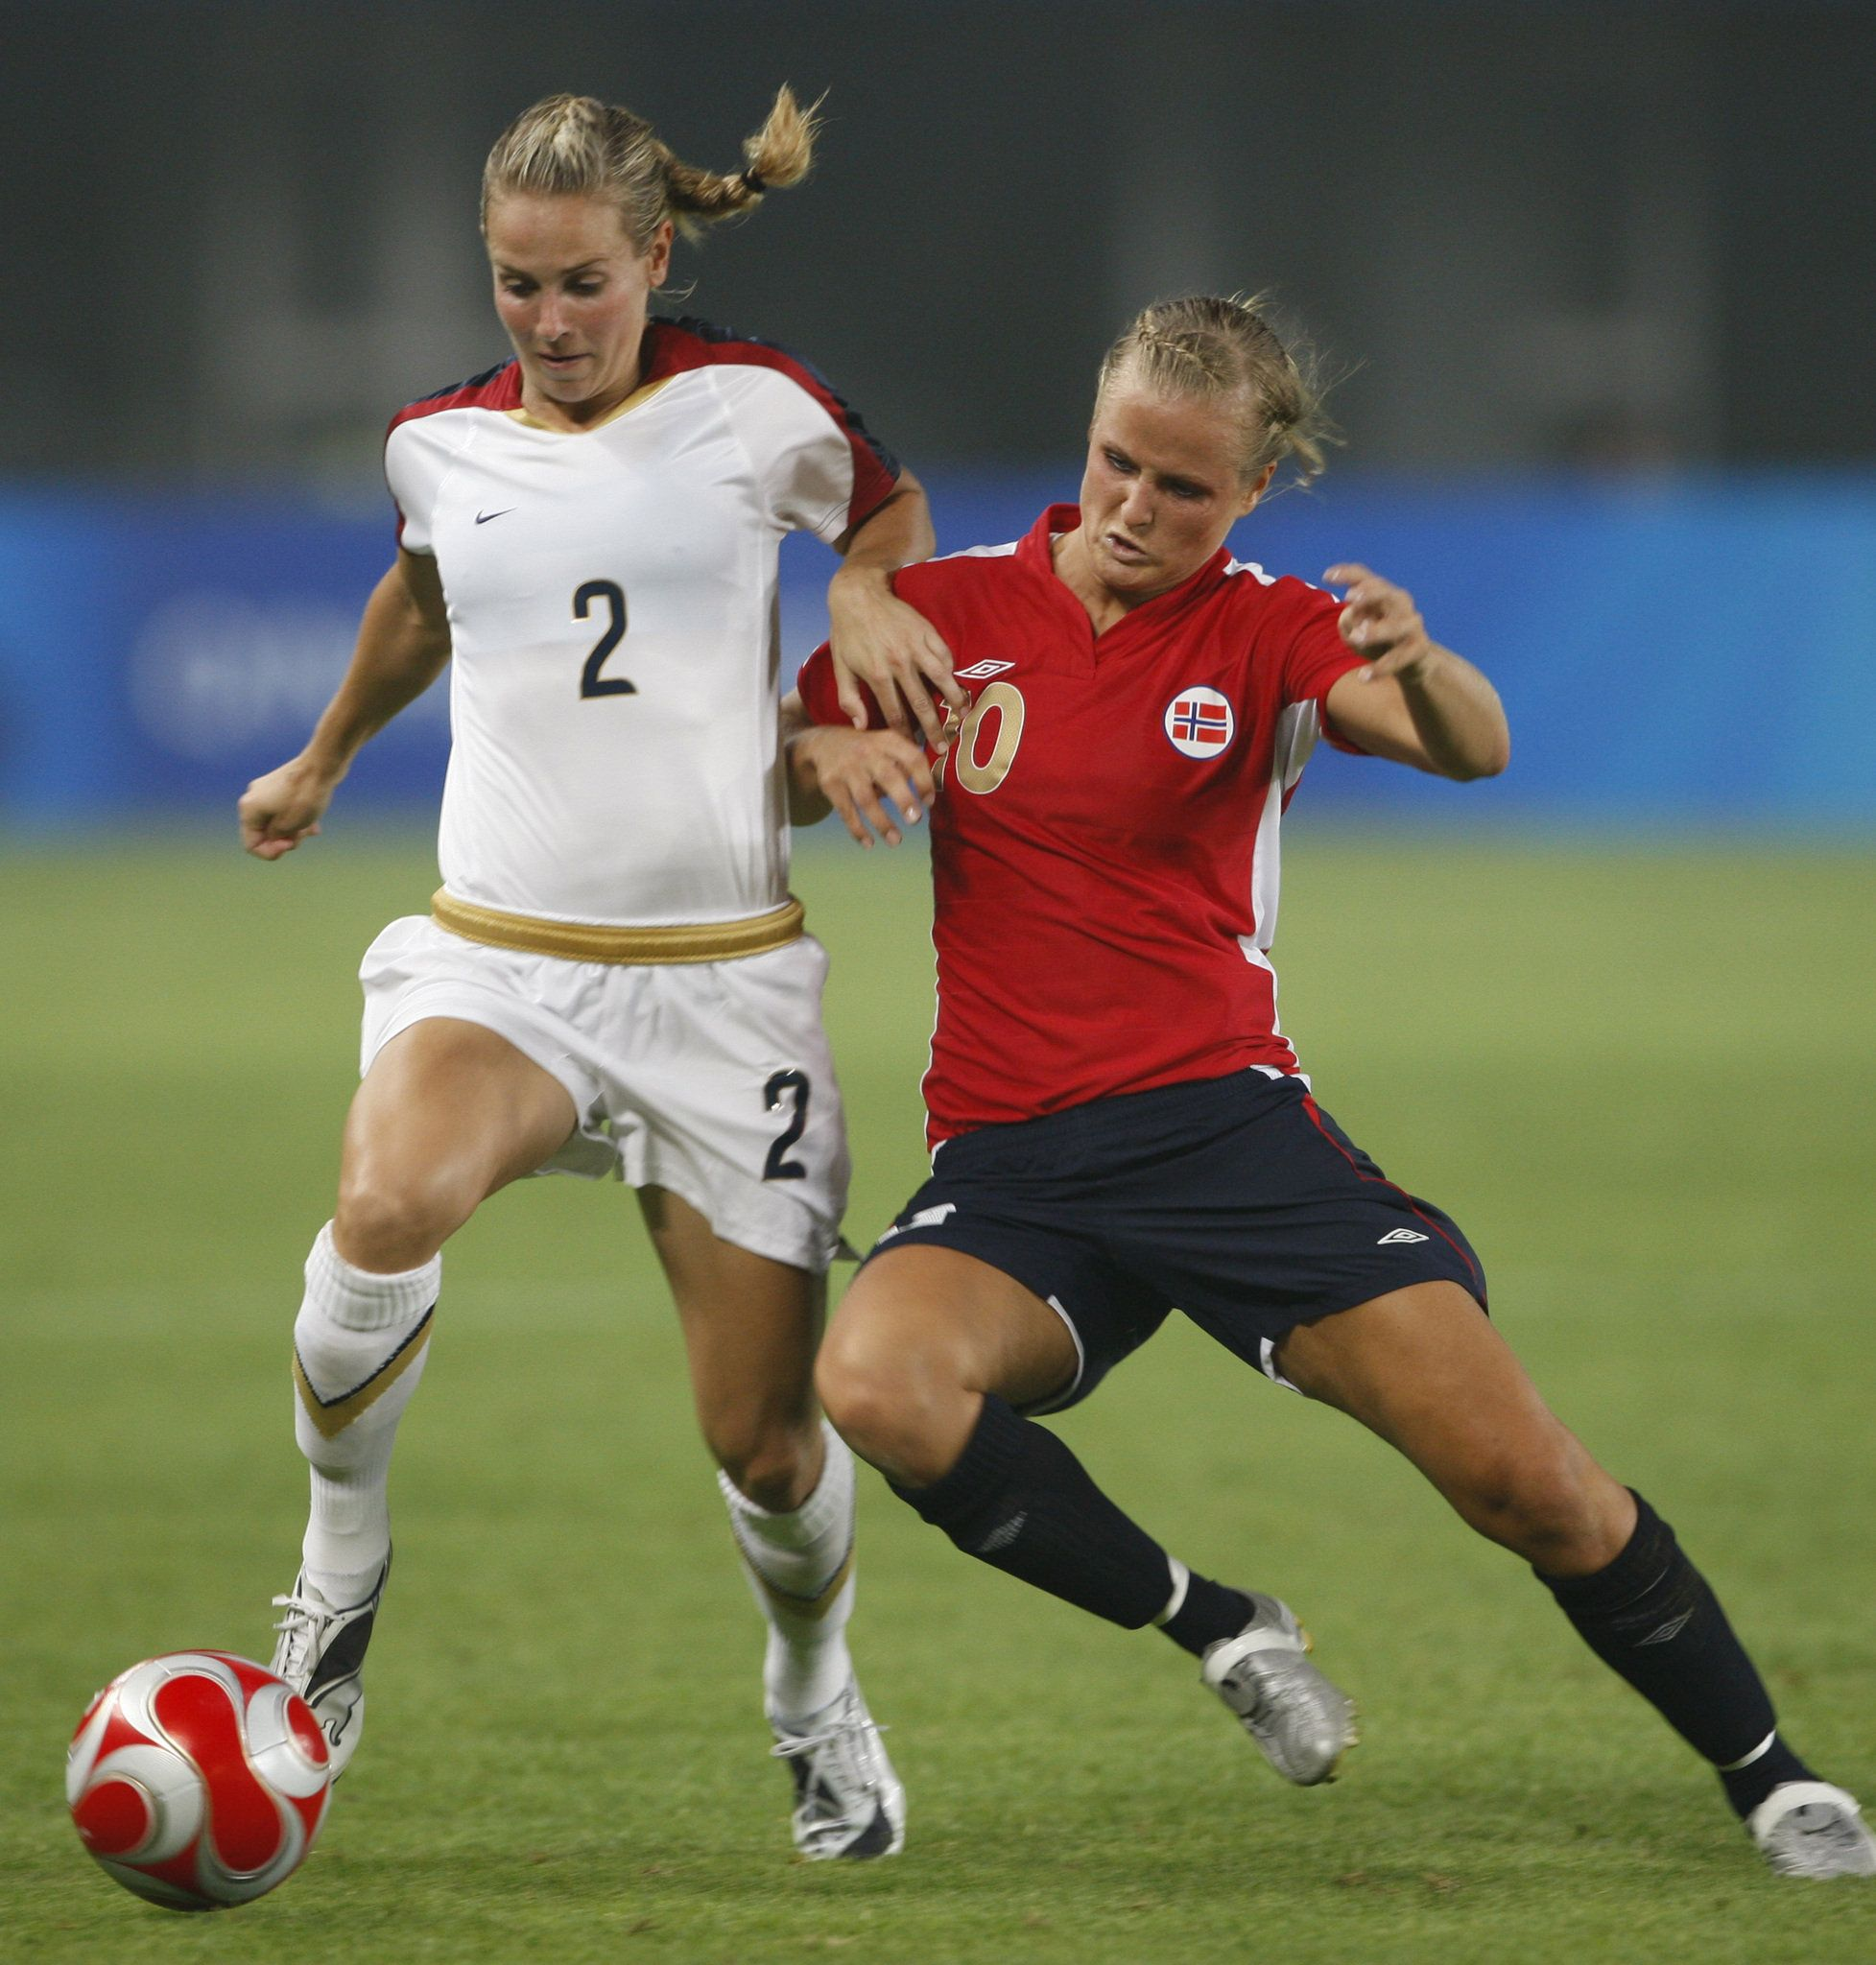 Olympic gold medalist former pro soccer player heather